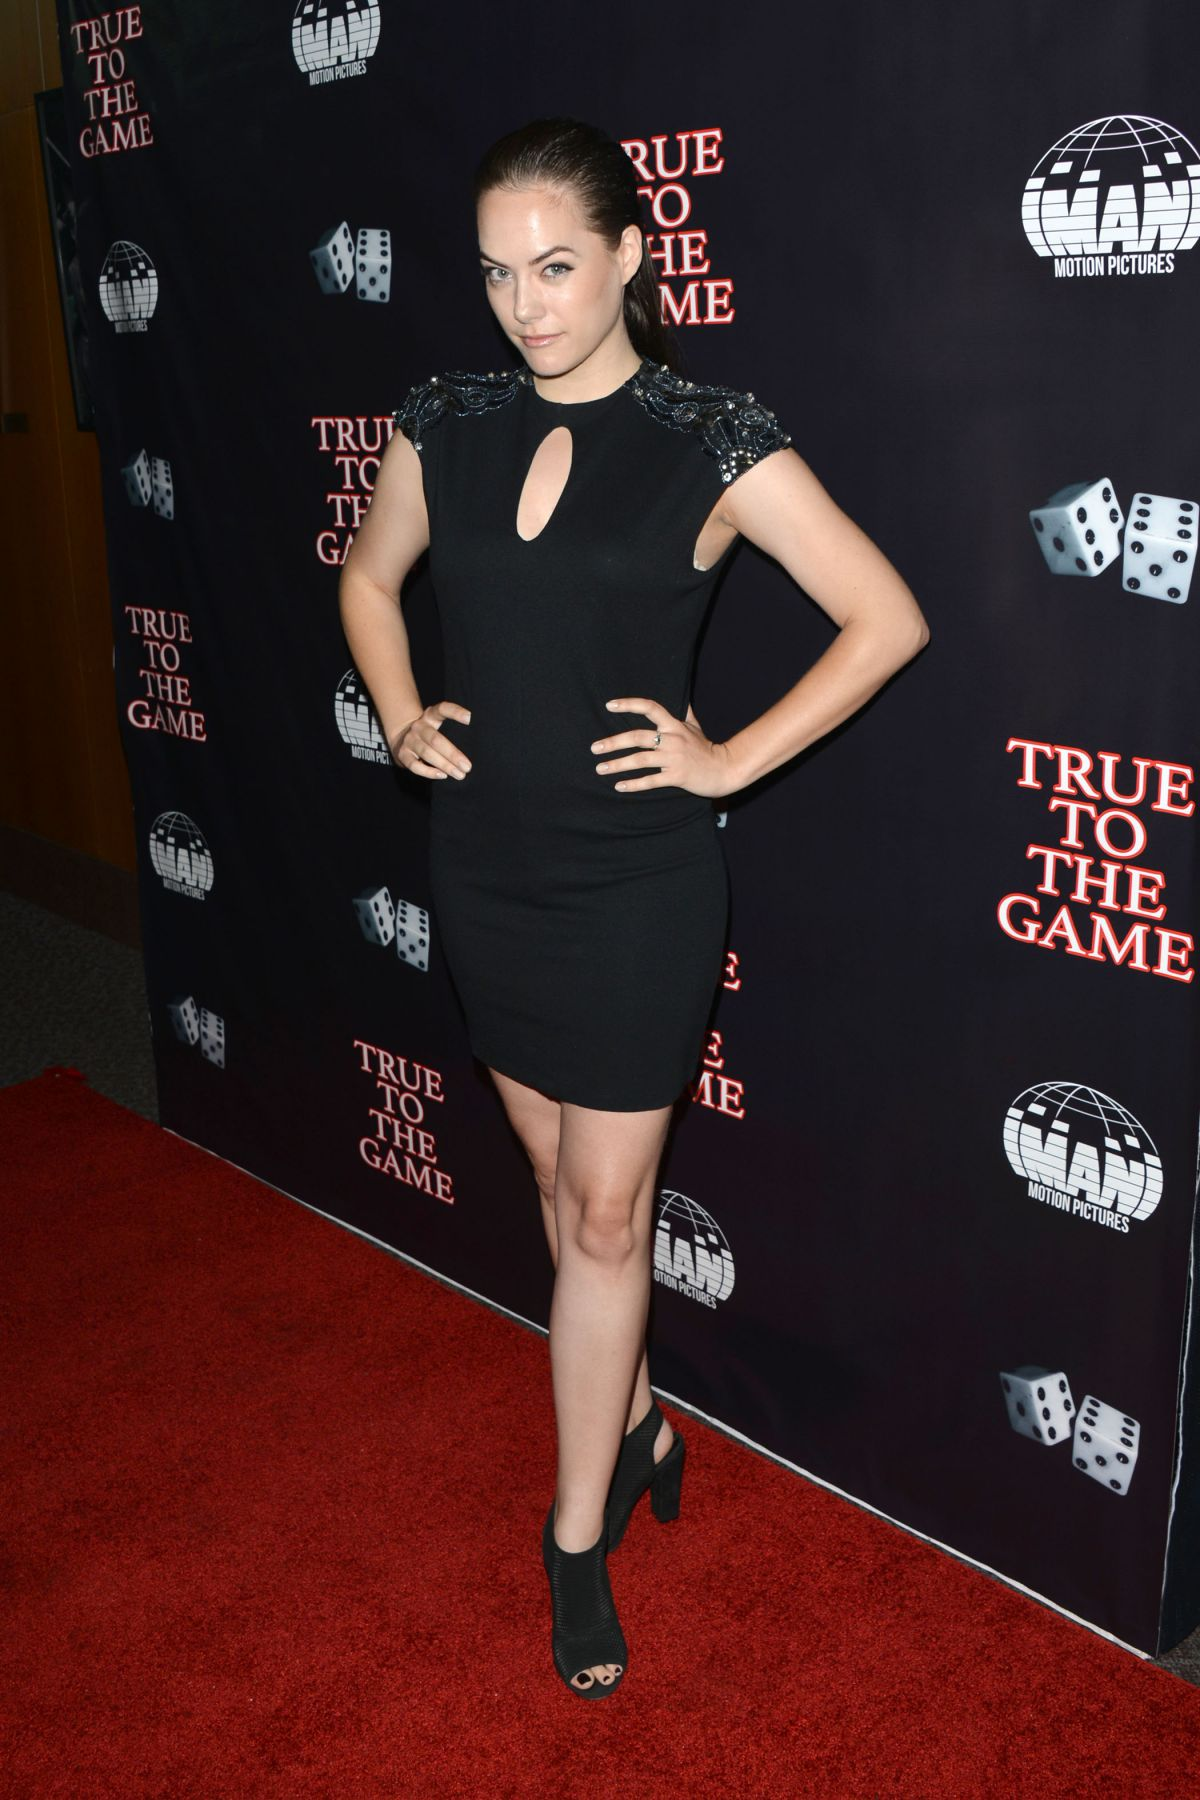 ANNIKA NOELLE at True to the Game in Los Angeles 09/05/2017